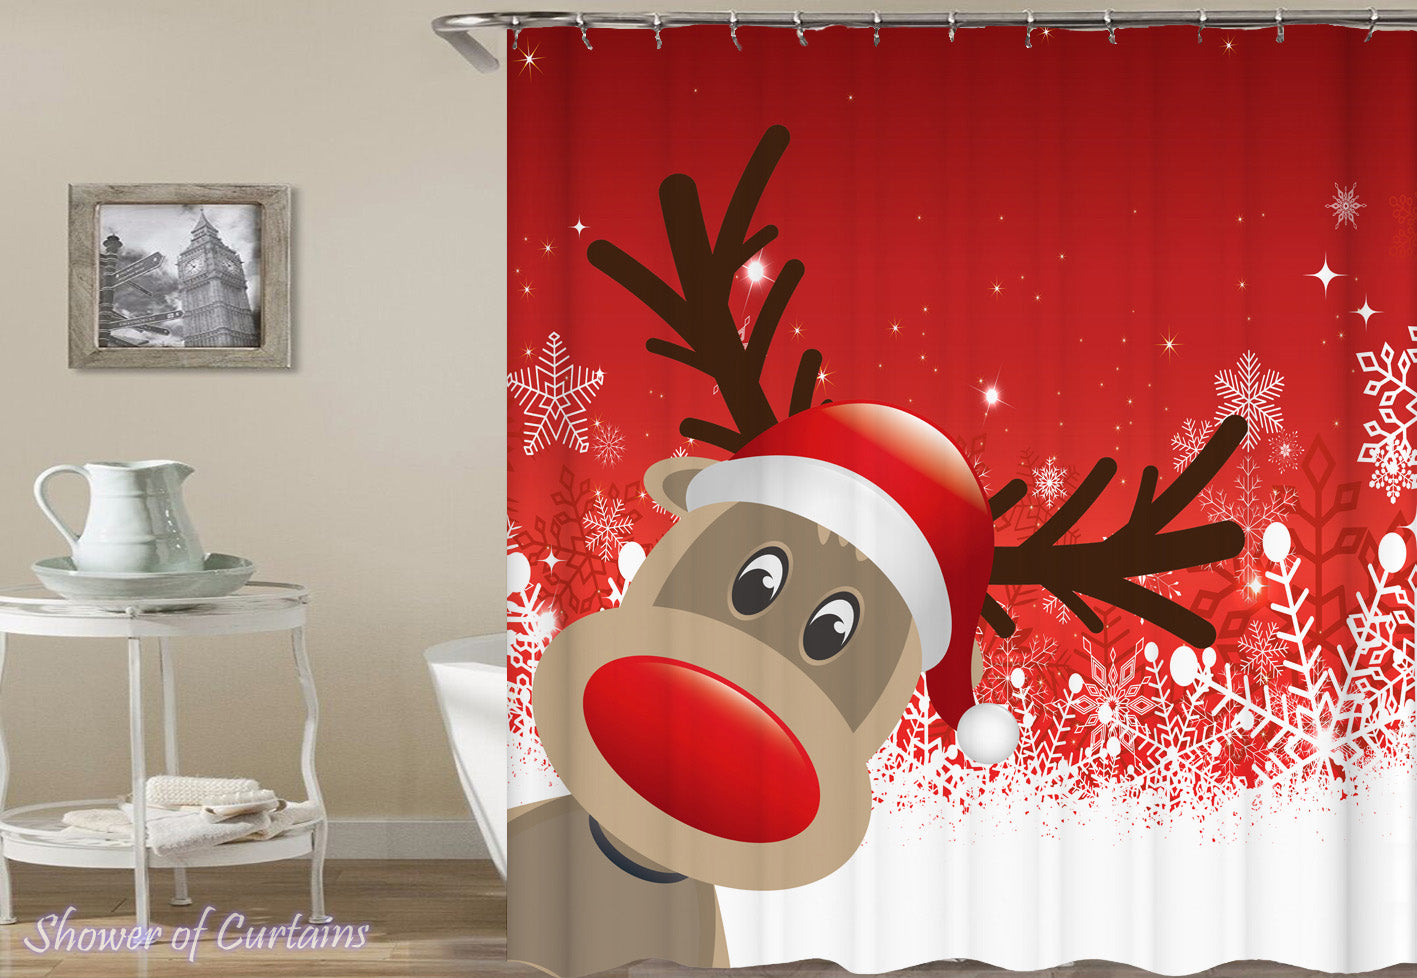 Holiday Shower Curtains Christmas Of Cute Cartoon Reindeer Curtain